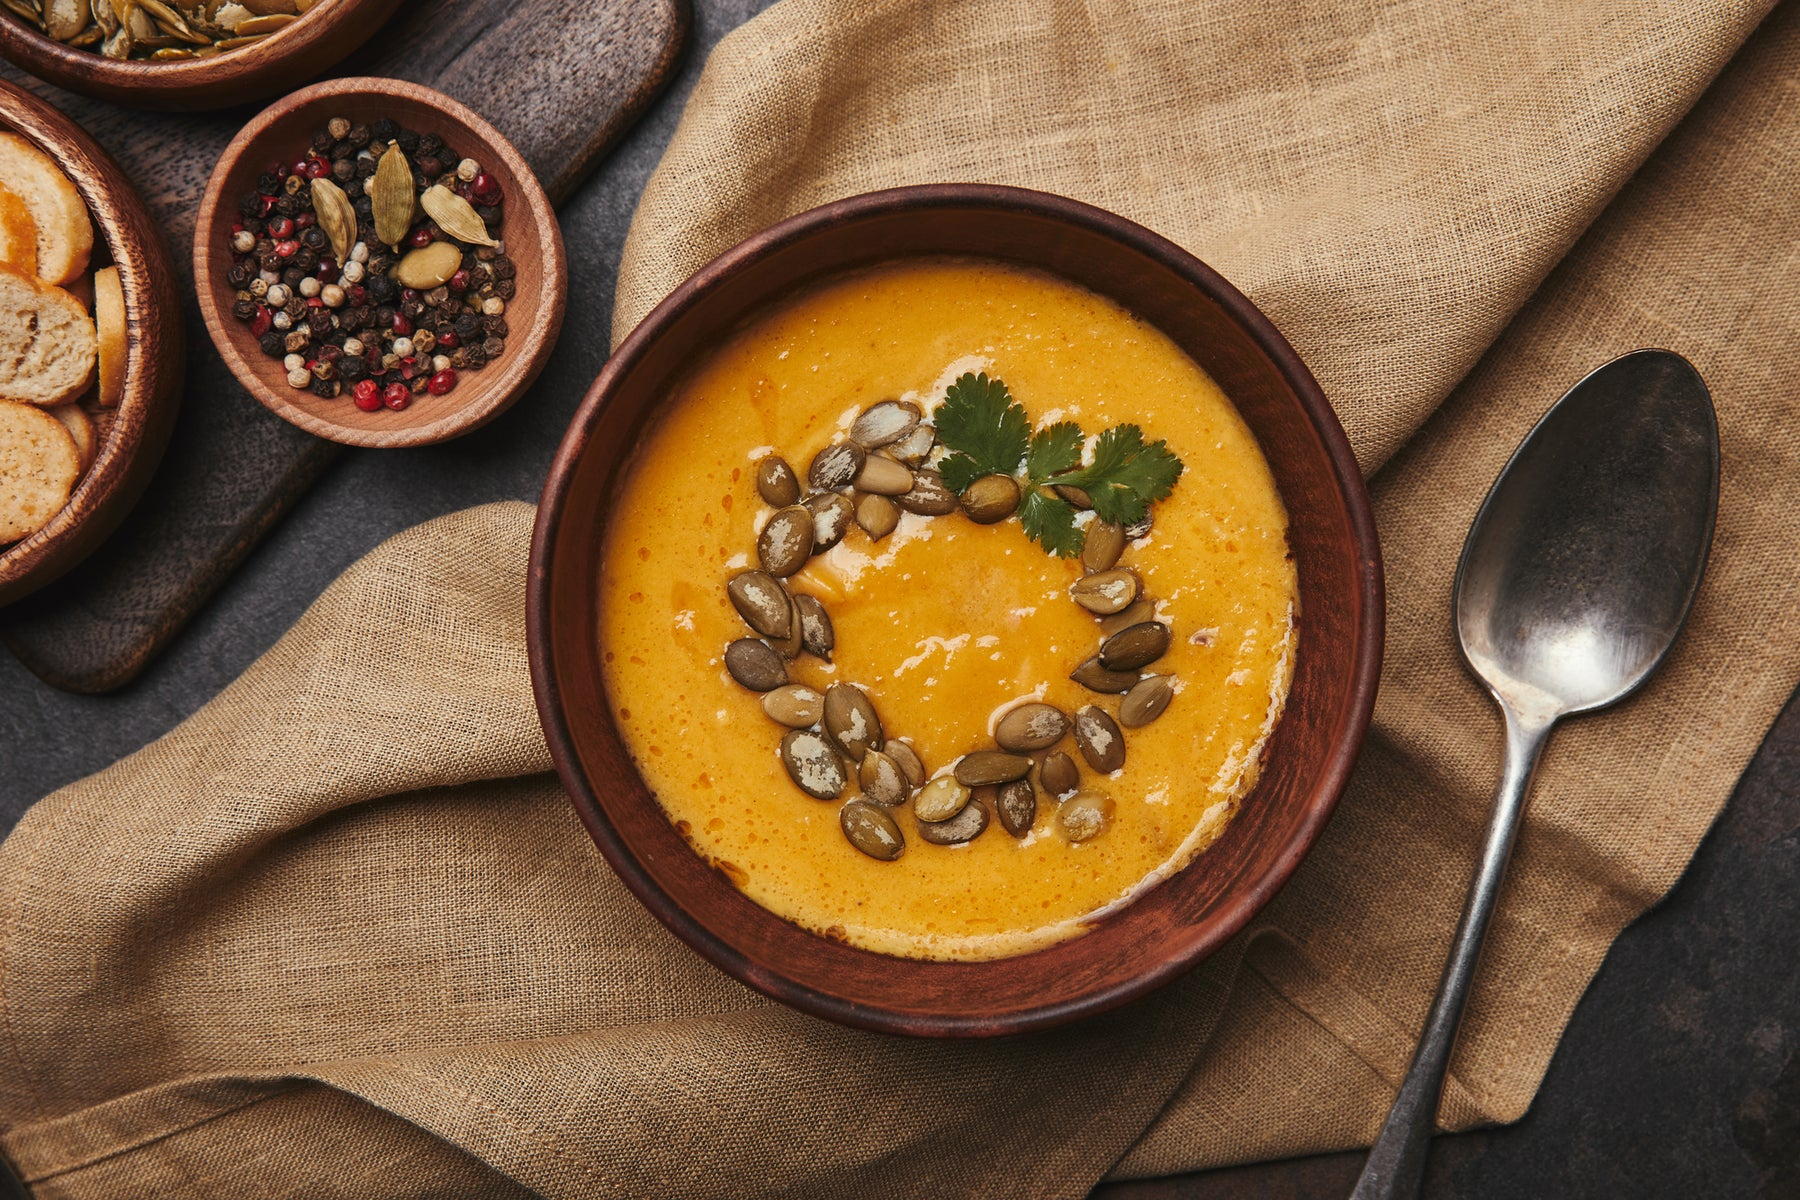 Keto Autumn Cream of Pumpkin Soup